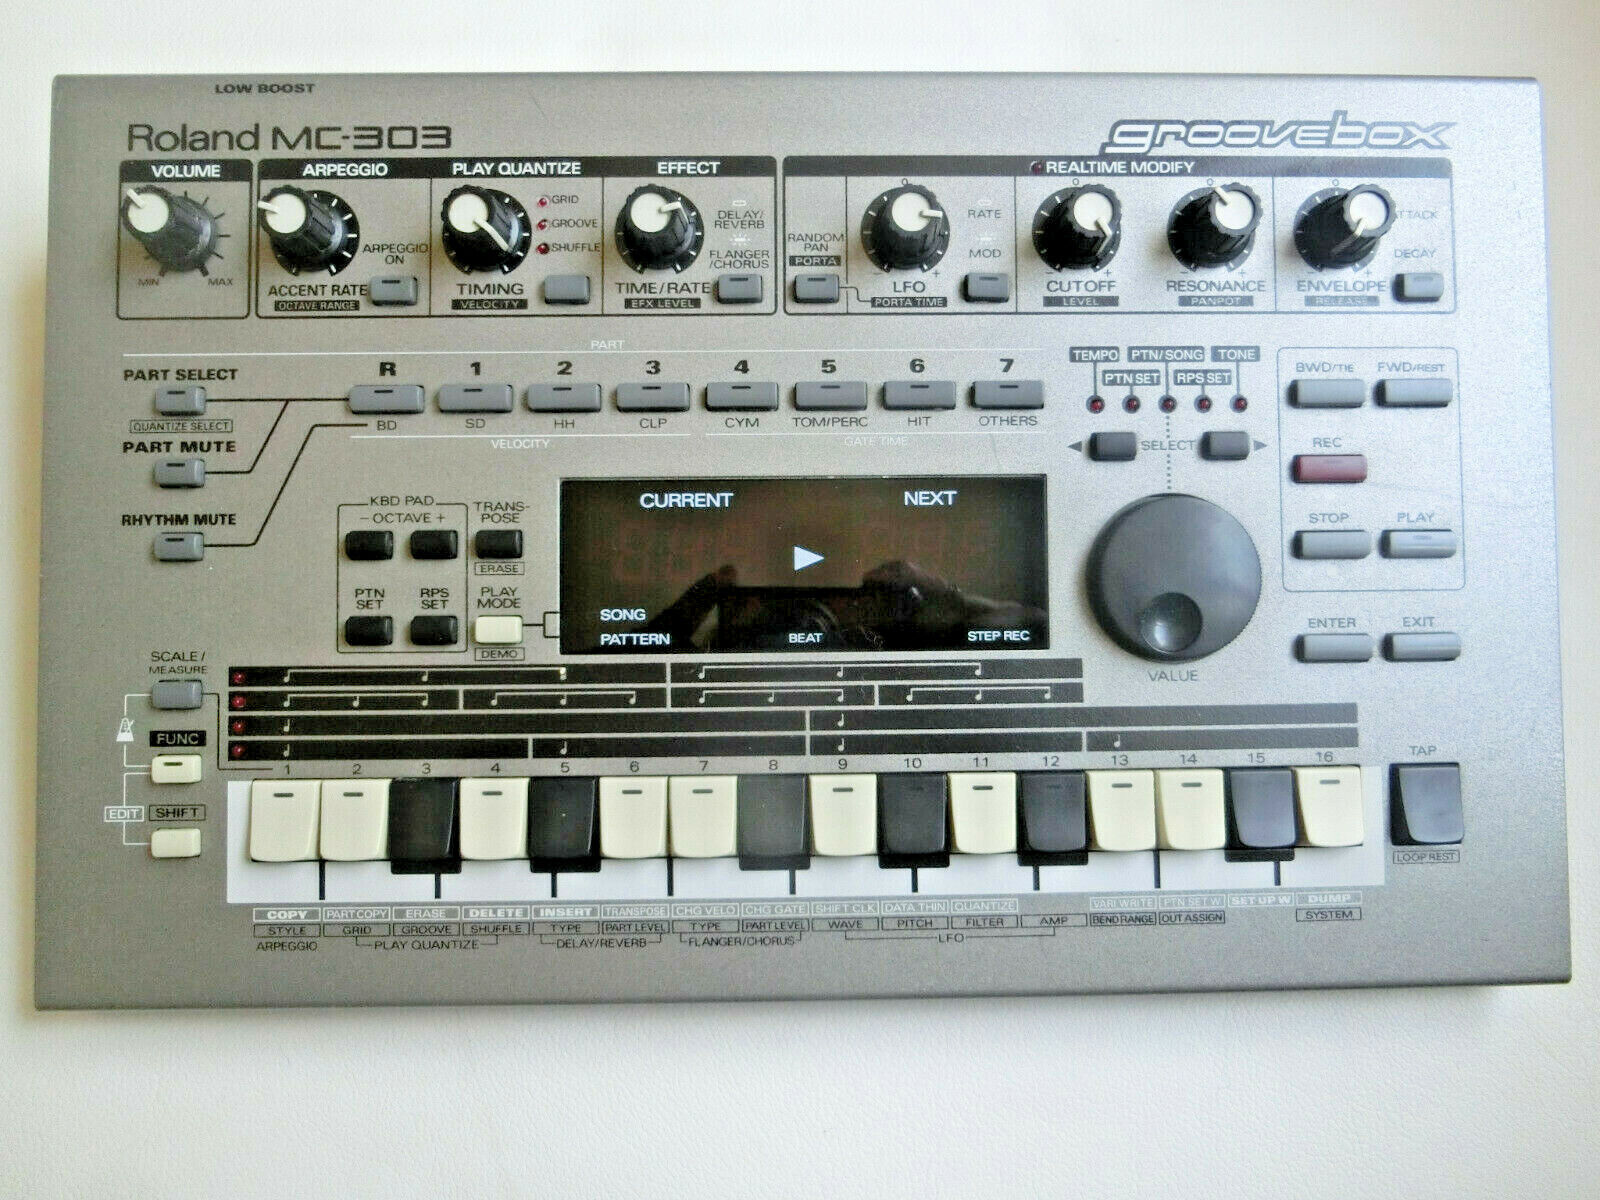 Never Used-Original Owner (Watch Video) Roland MC 303 Groovebox